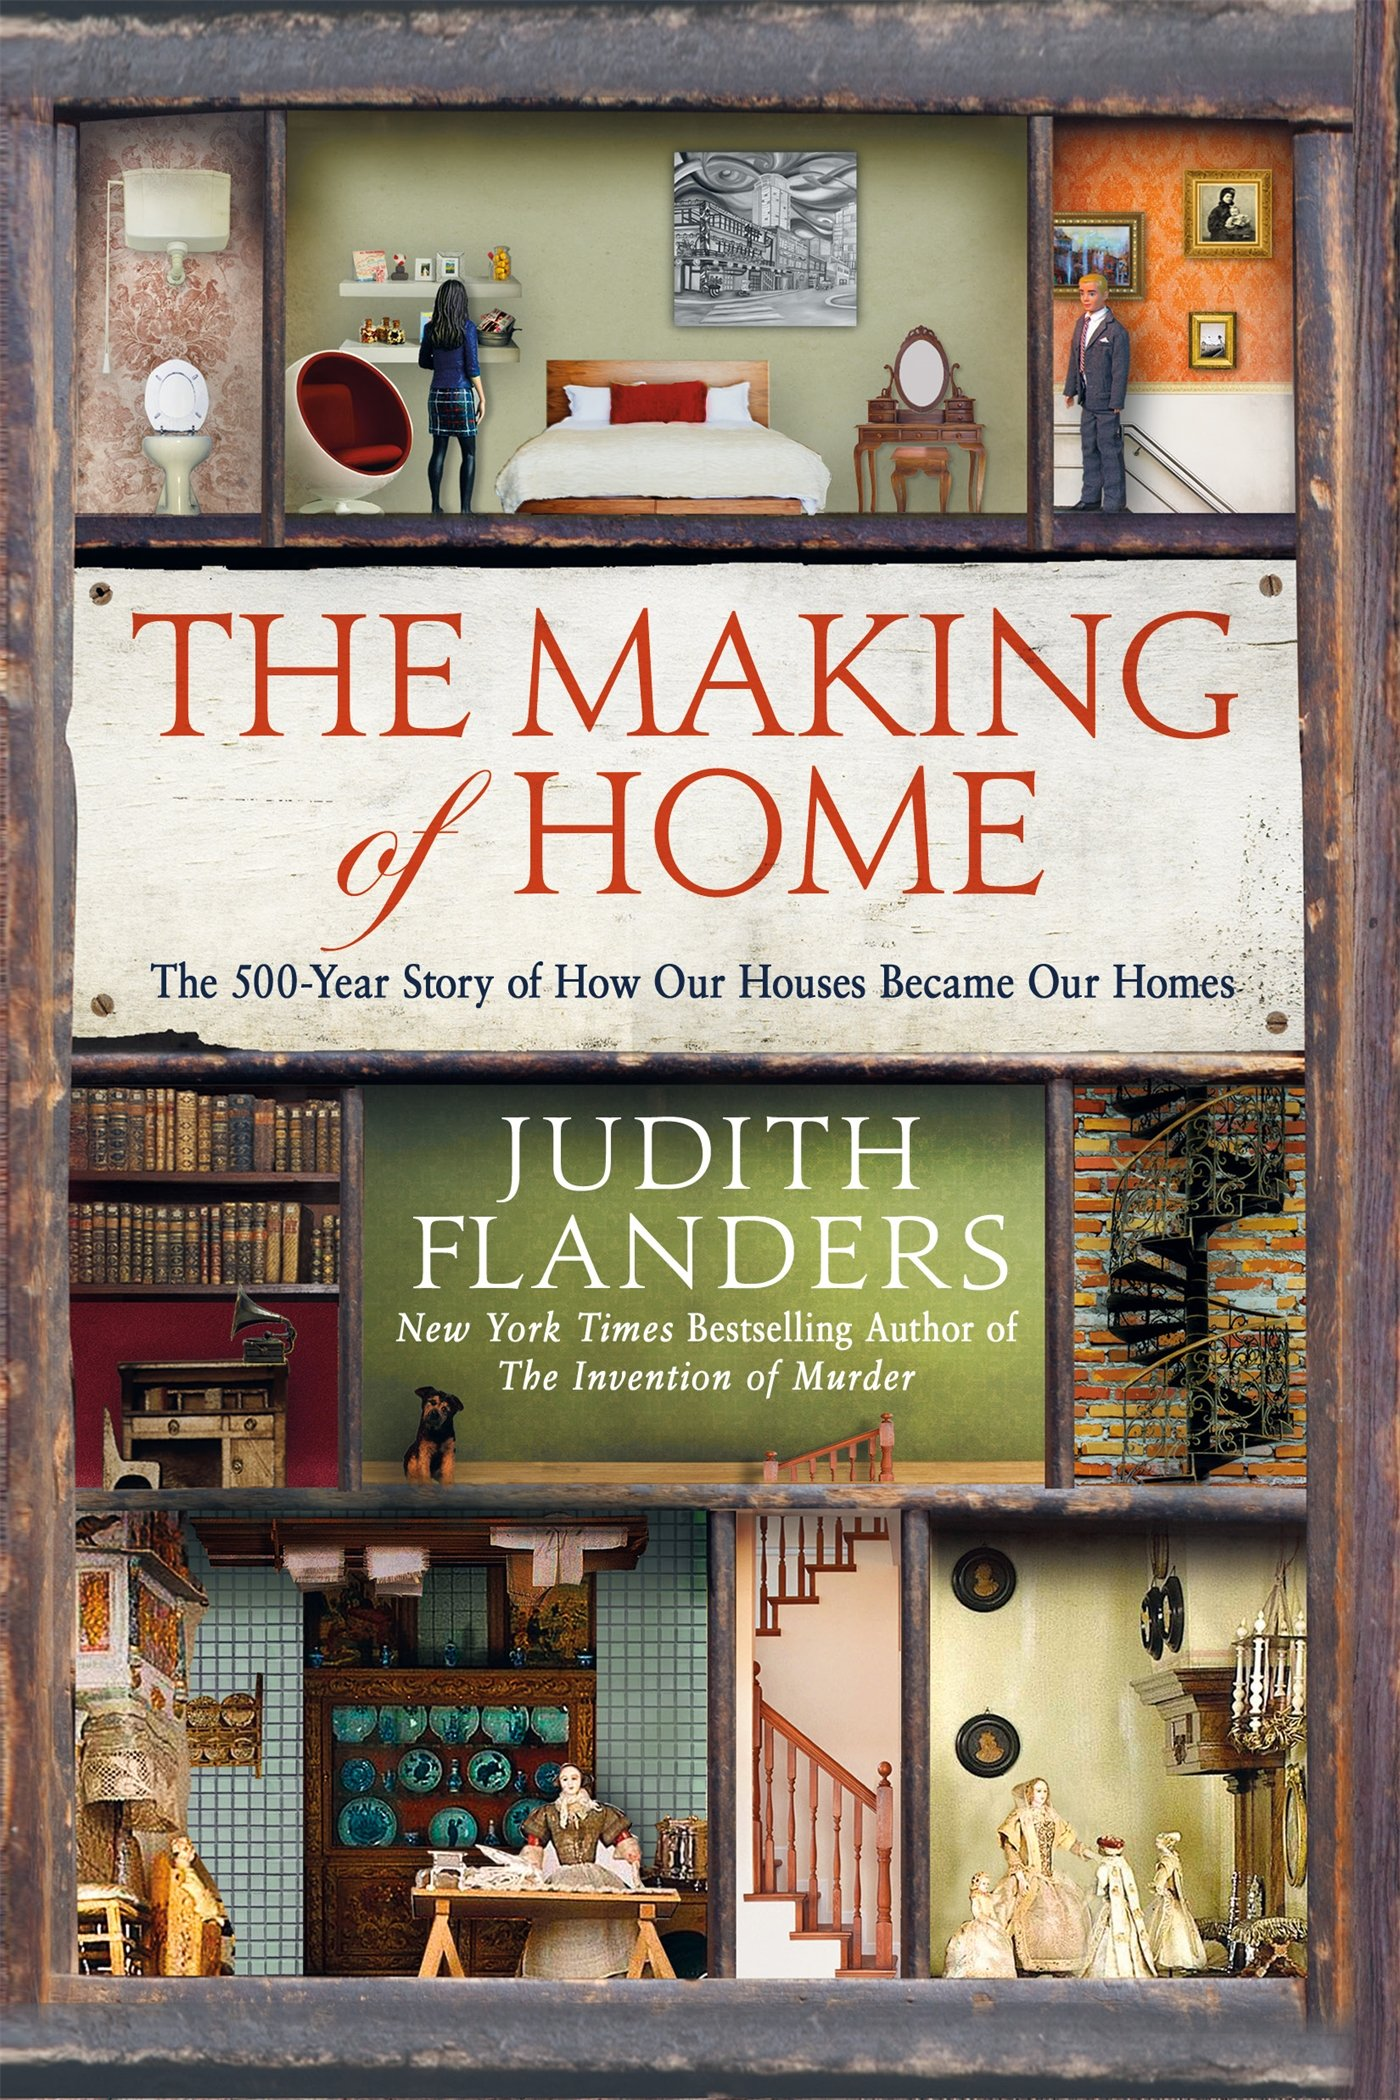 "7. The Making of Home: The 500-Year Story of How Our Houses Became Our Homes by Judith Flanders - ""Judith Flanders's new book isn't just smart and diverting but it is also brave… Flanders uses books well and pictures intelligently, searching images for hidden meaning… this book has charm and learning."" - The New York Times Book ReviewAvailable at Powell's City of Books for $10.98"